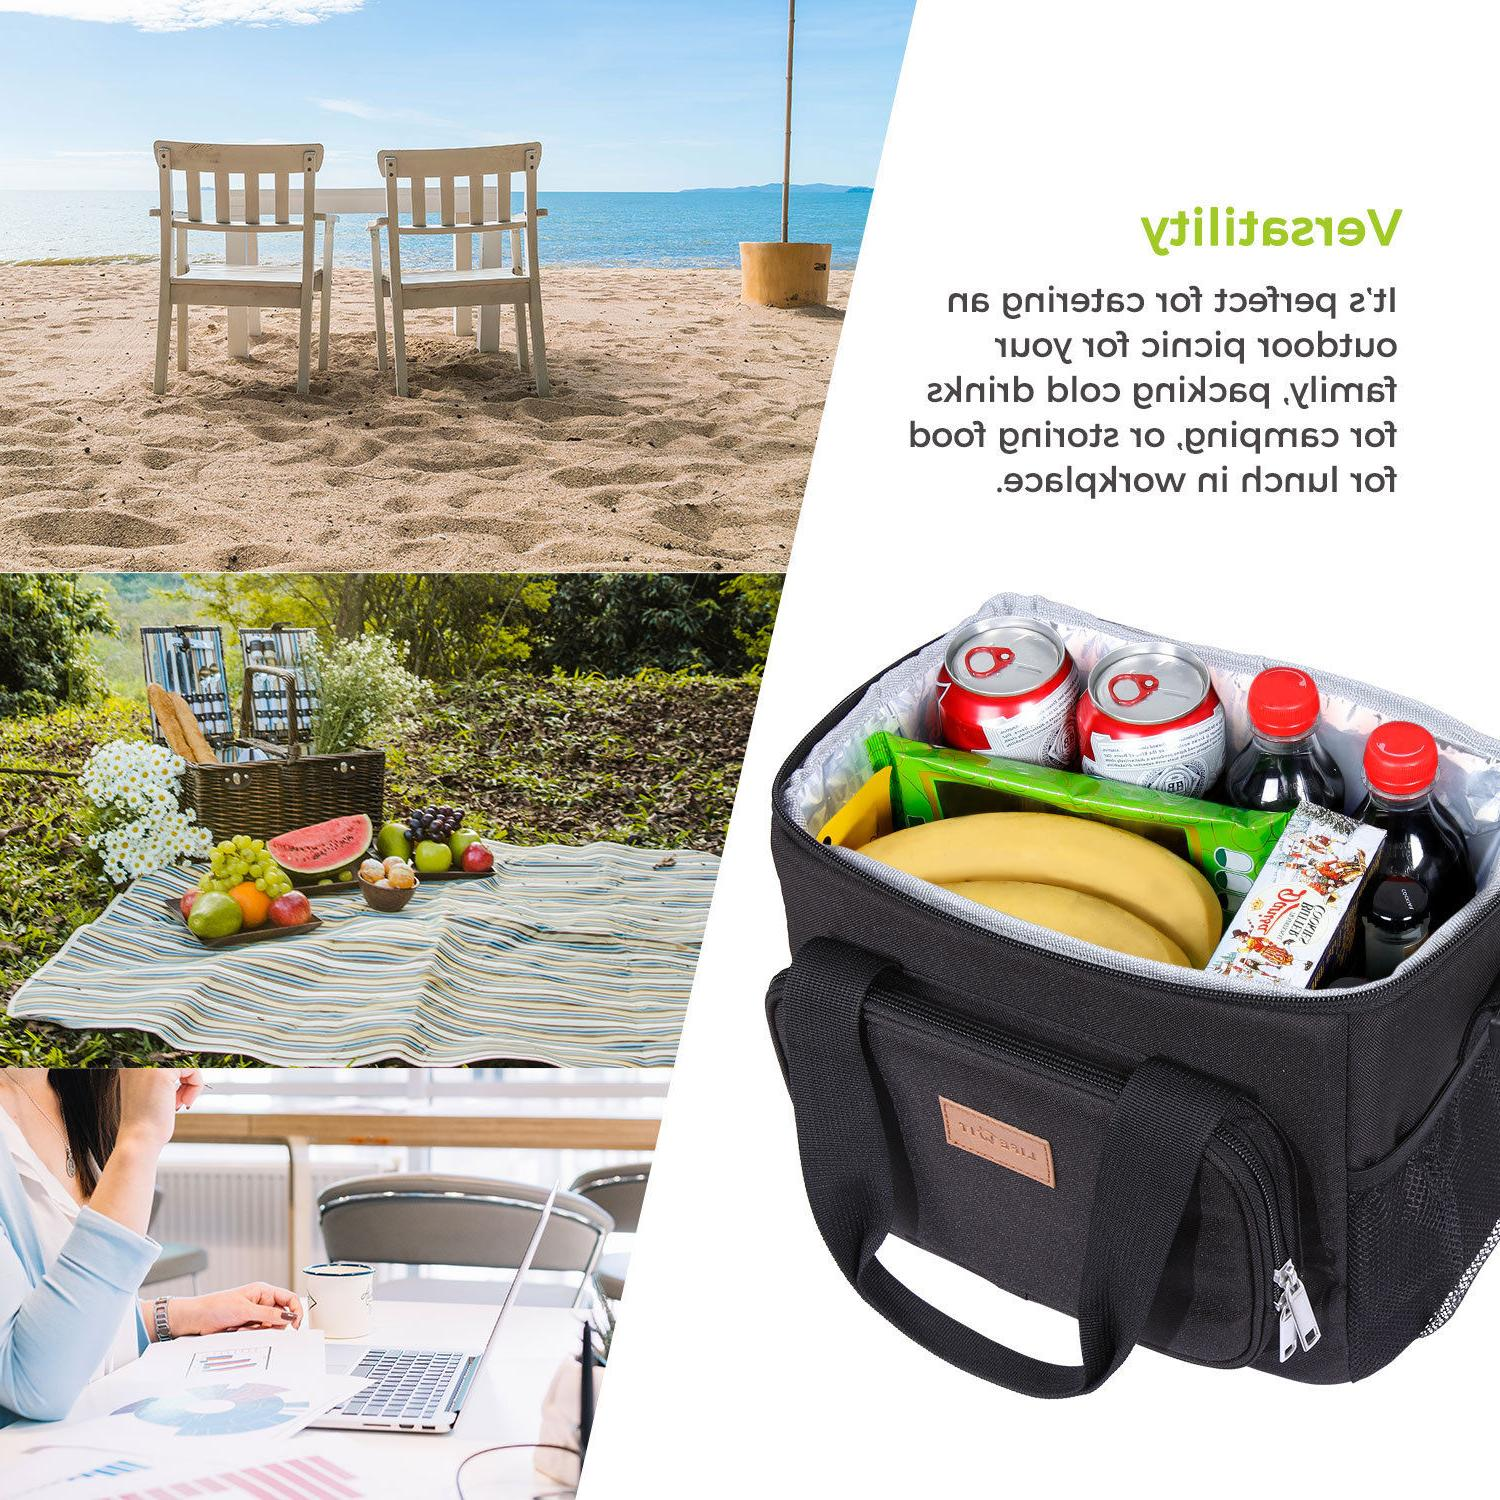 Lifewit Insulated Lunch Bag Cooler Storage for